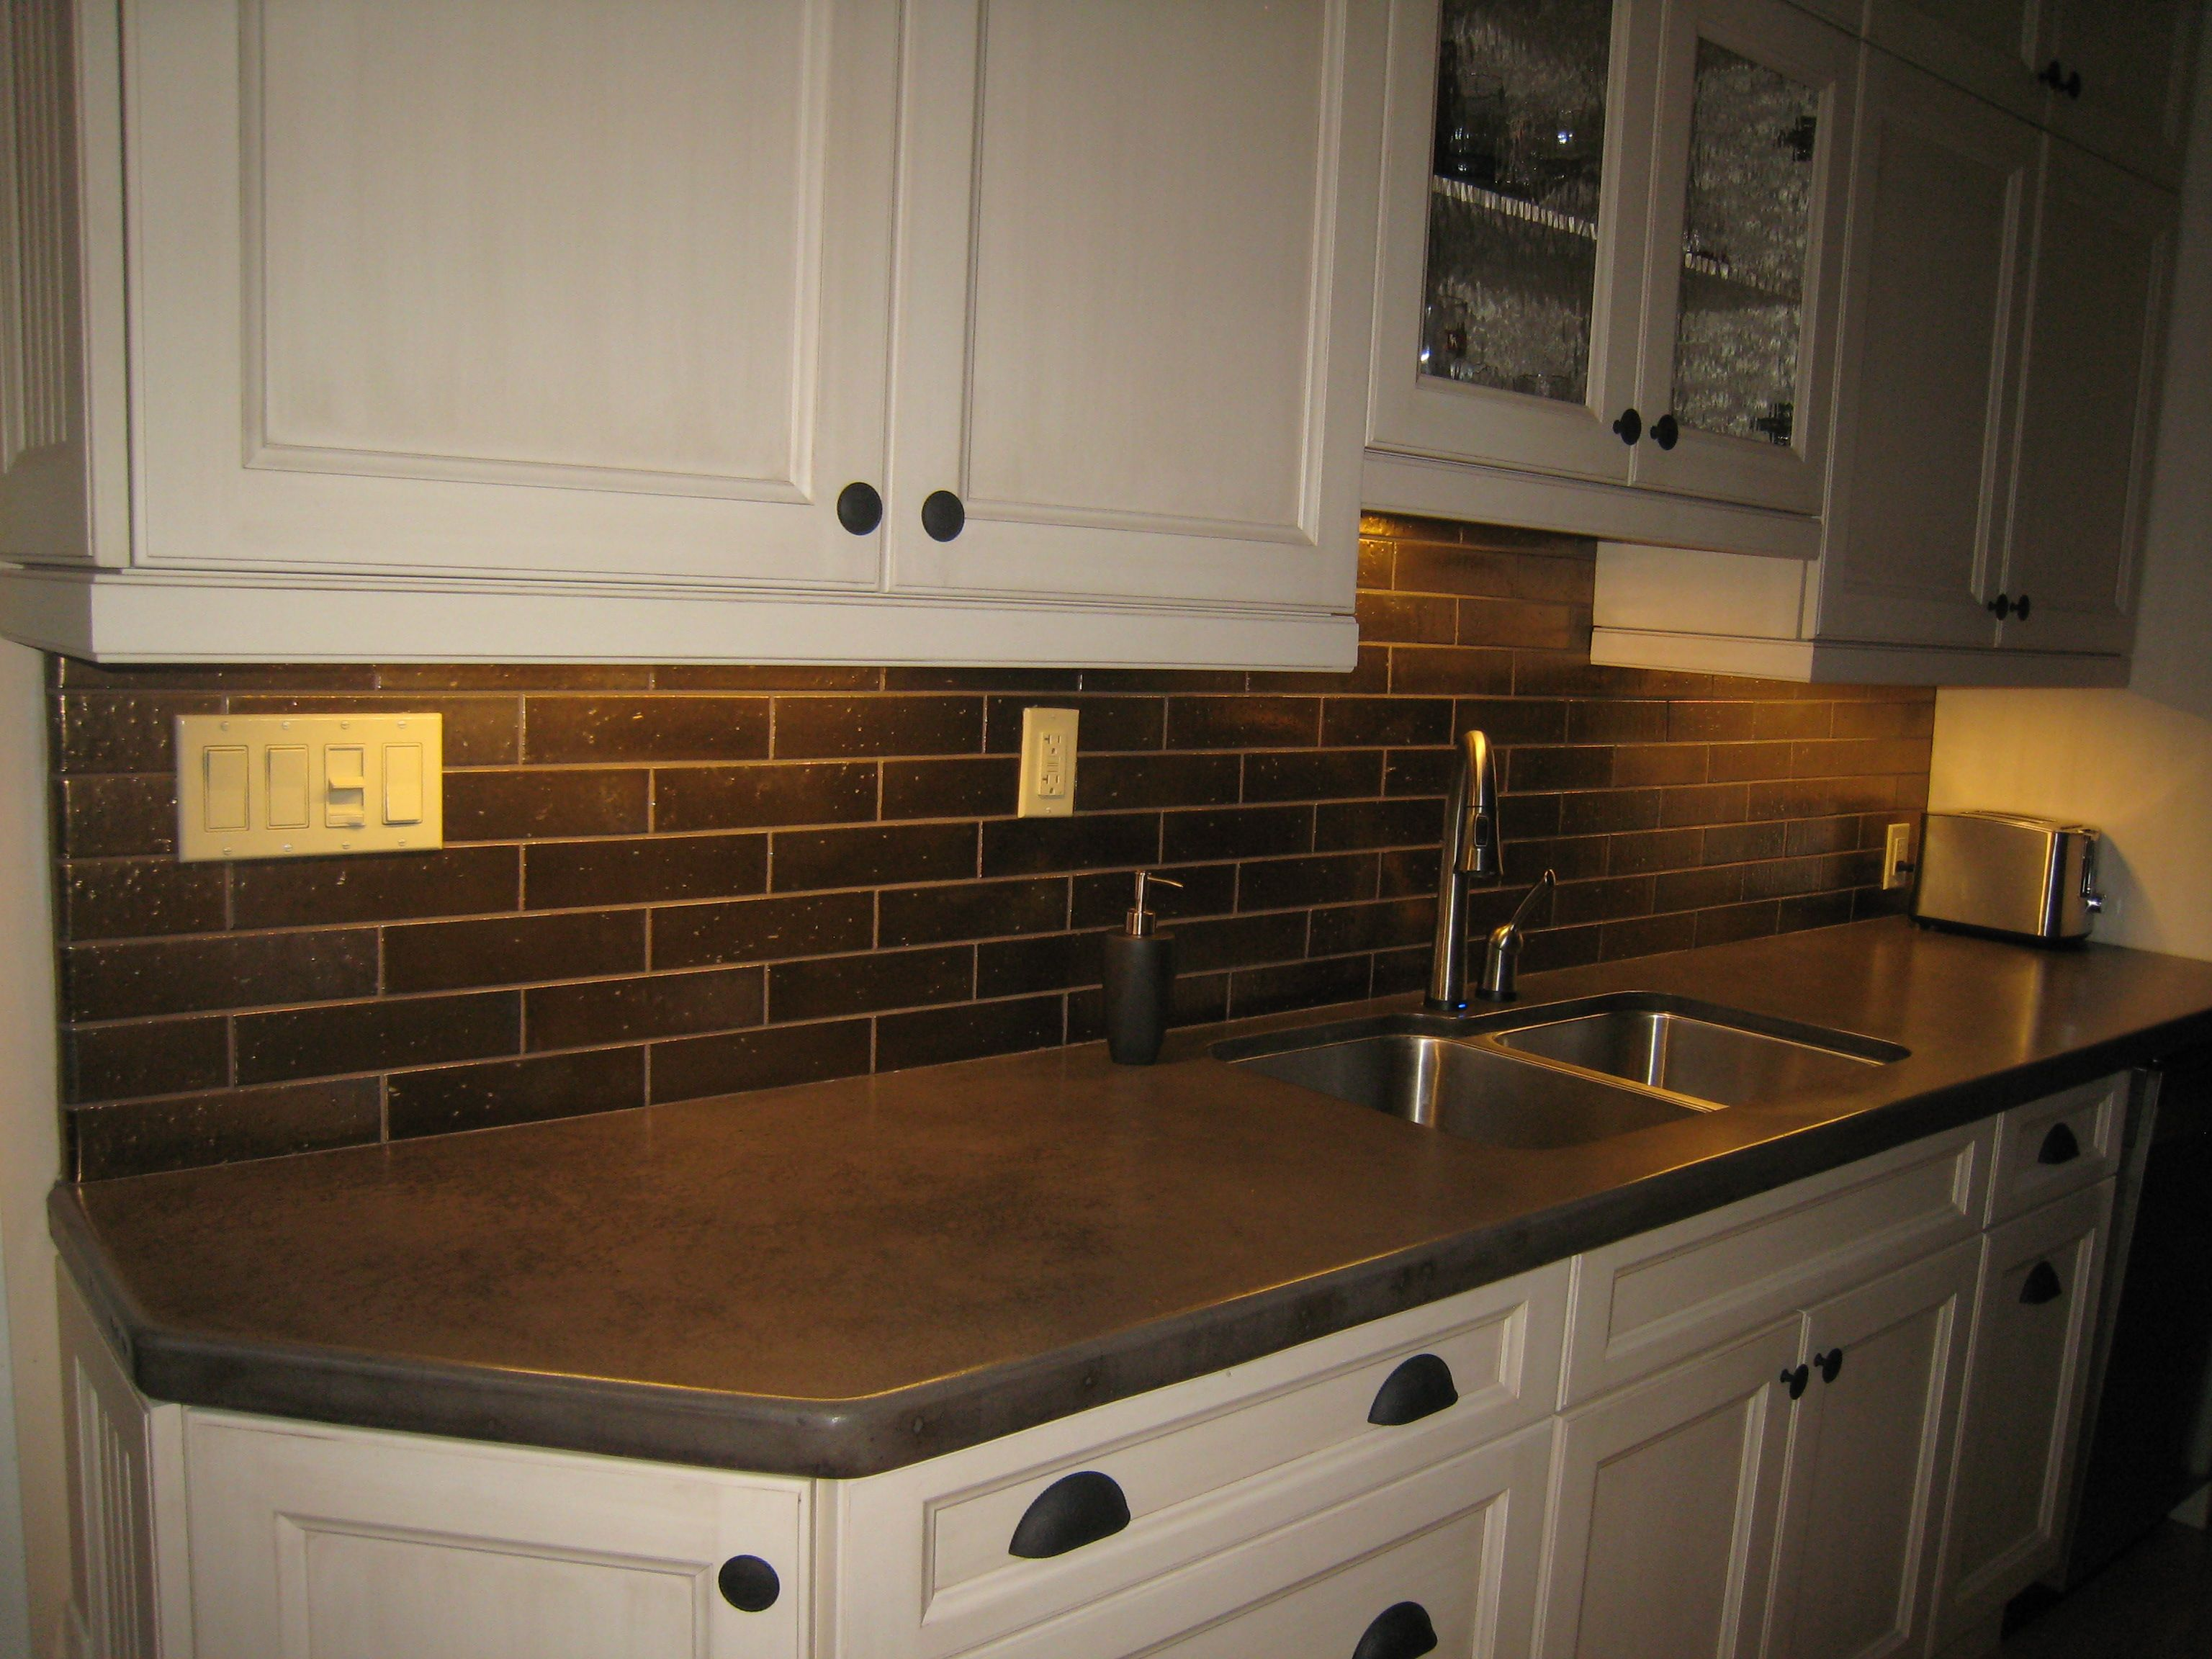 kitchen subway tile backsplash ideas | kitchen cabinets kitchen